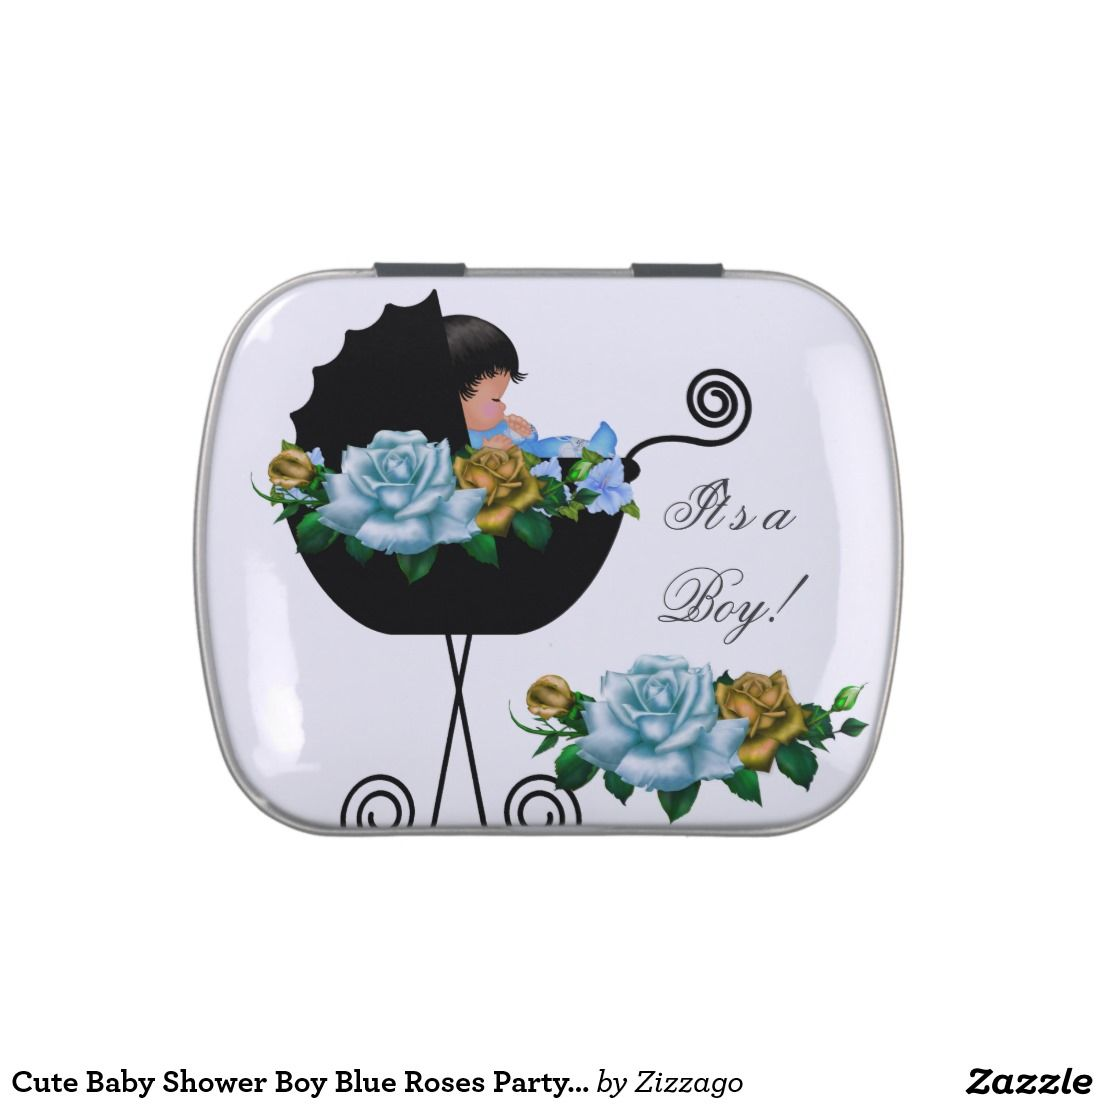 Cute Baby Shower Boy Blue Roses Party Favor Jelly Belly Tins